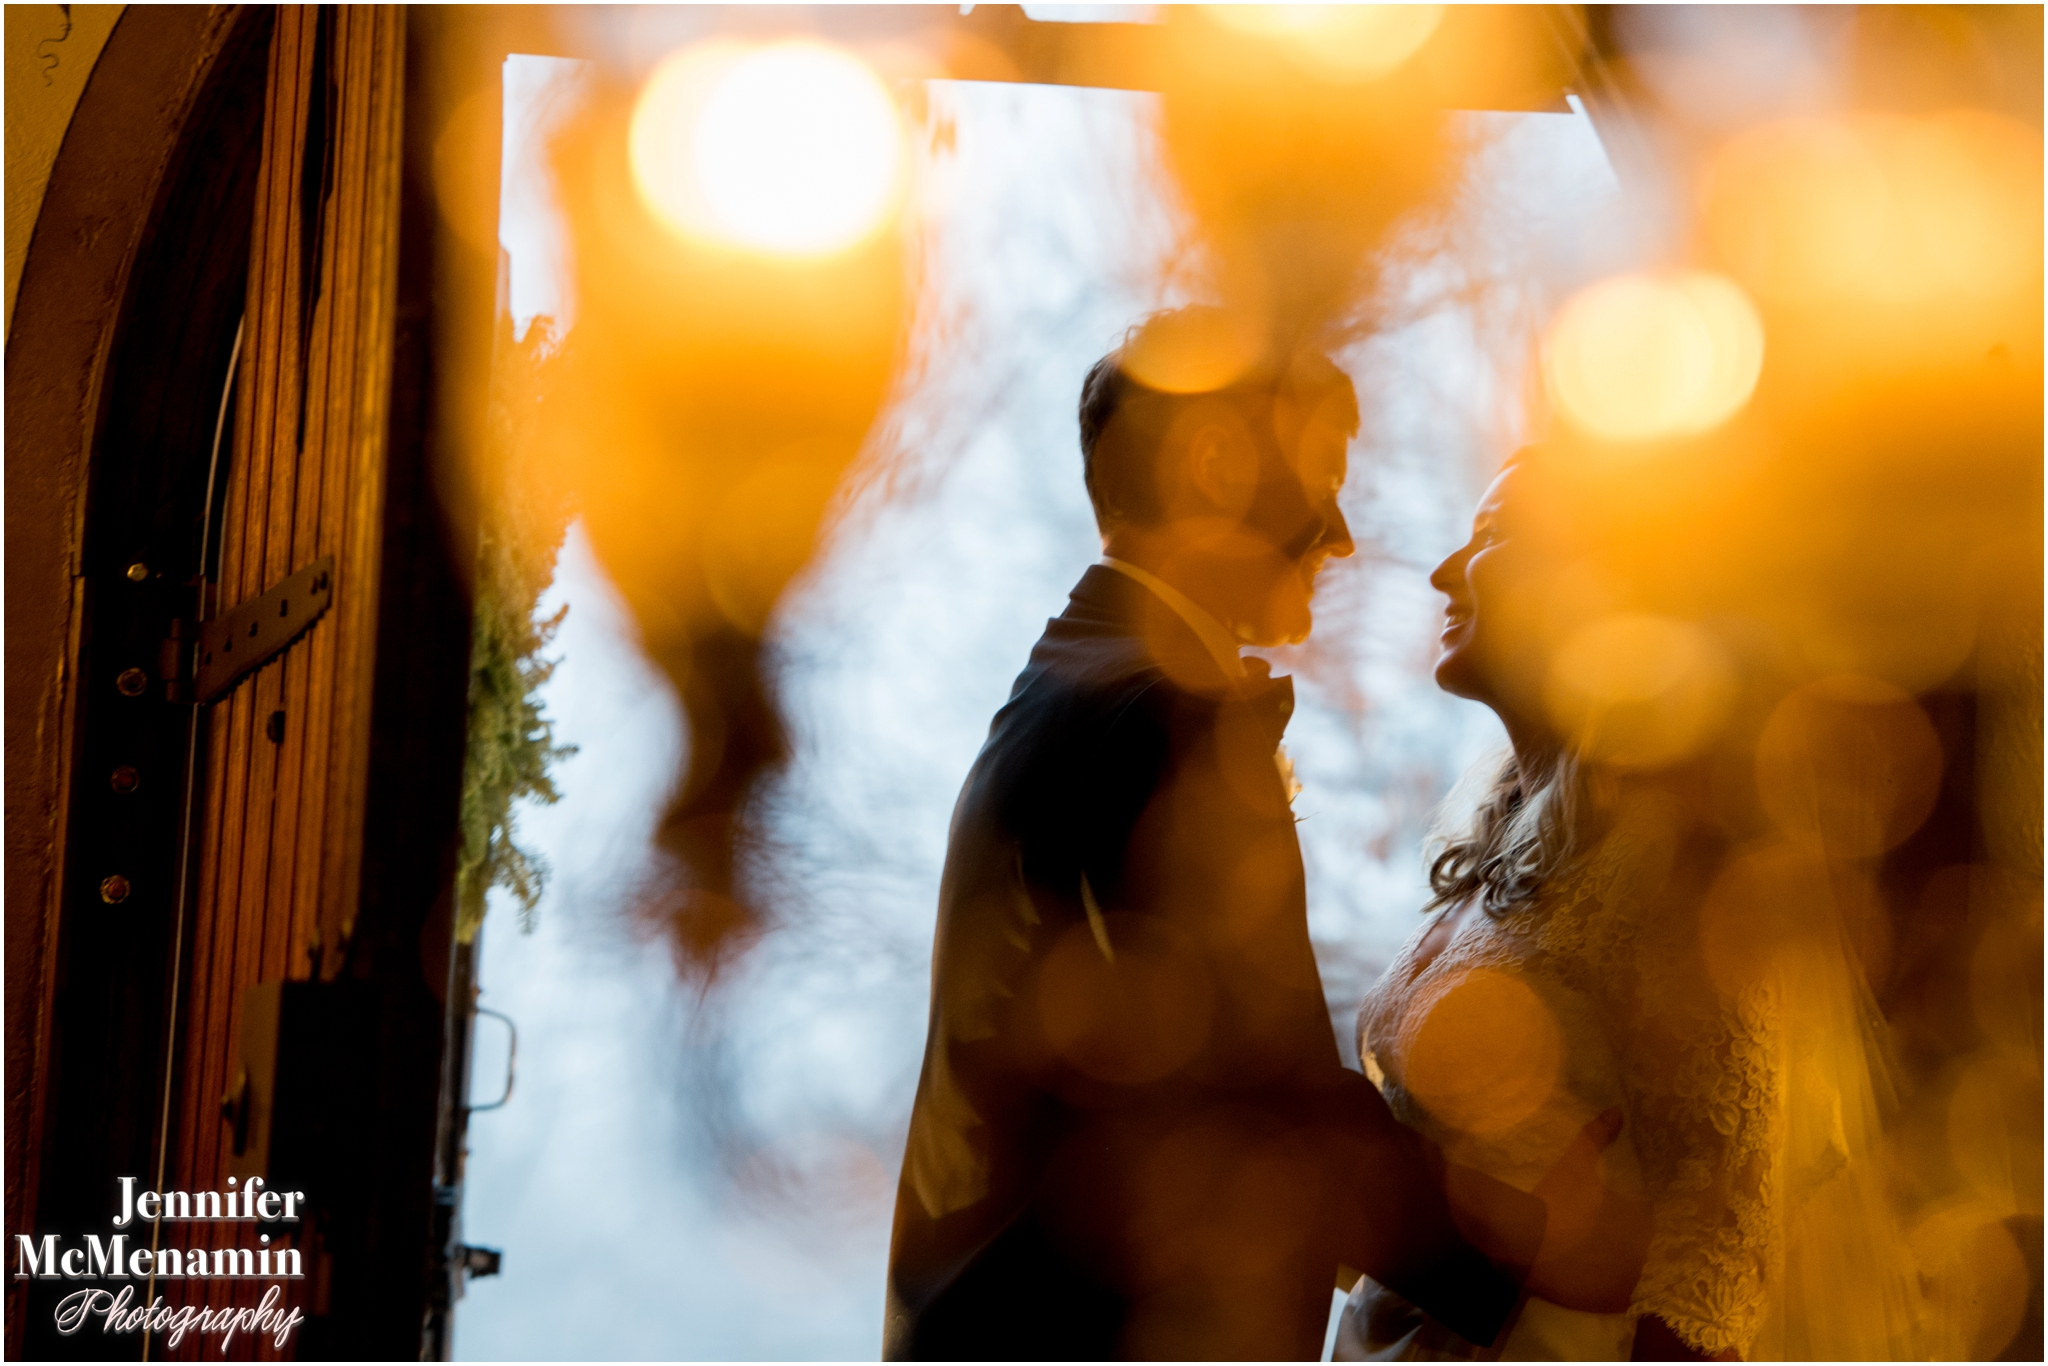 0001_RyanClemmens_02014-0549_JenniferMcMenaminPhotography_Immaculate-Conception-Church_The-Cloisters_Baltimore-wedding-photography_Baltimore-wedding-photographer